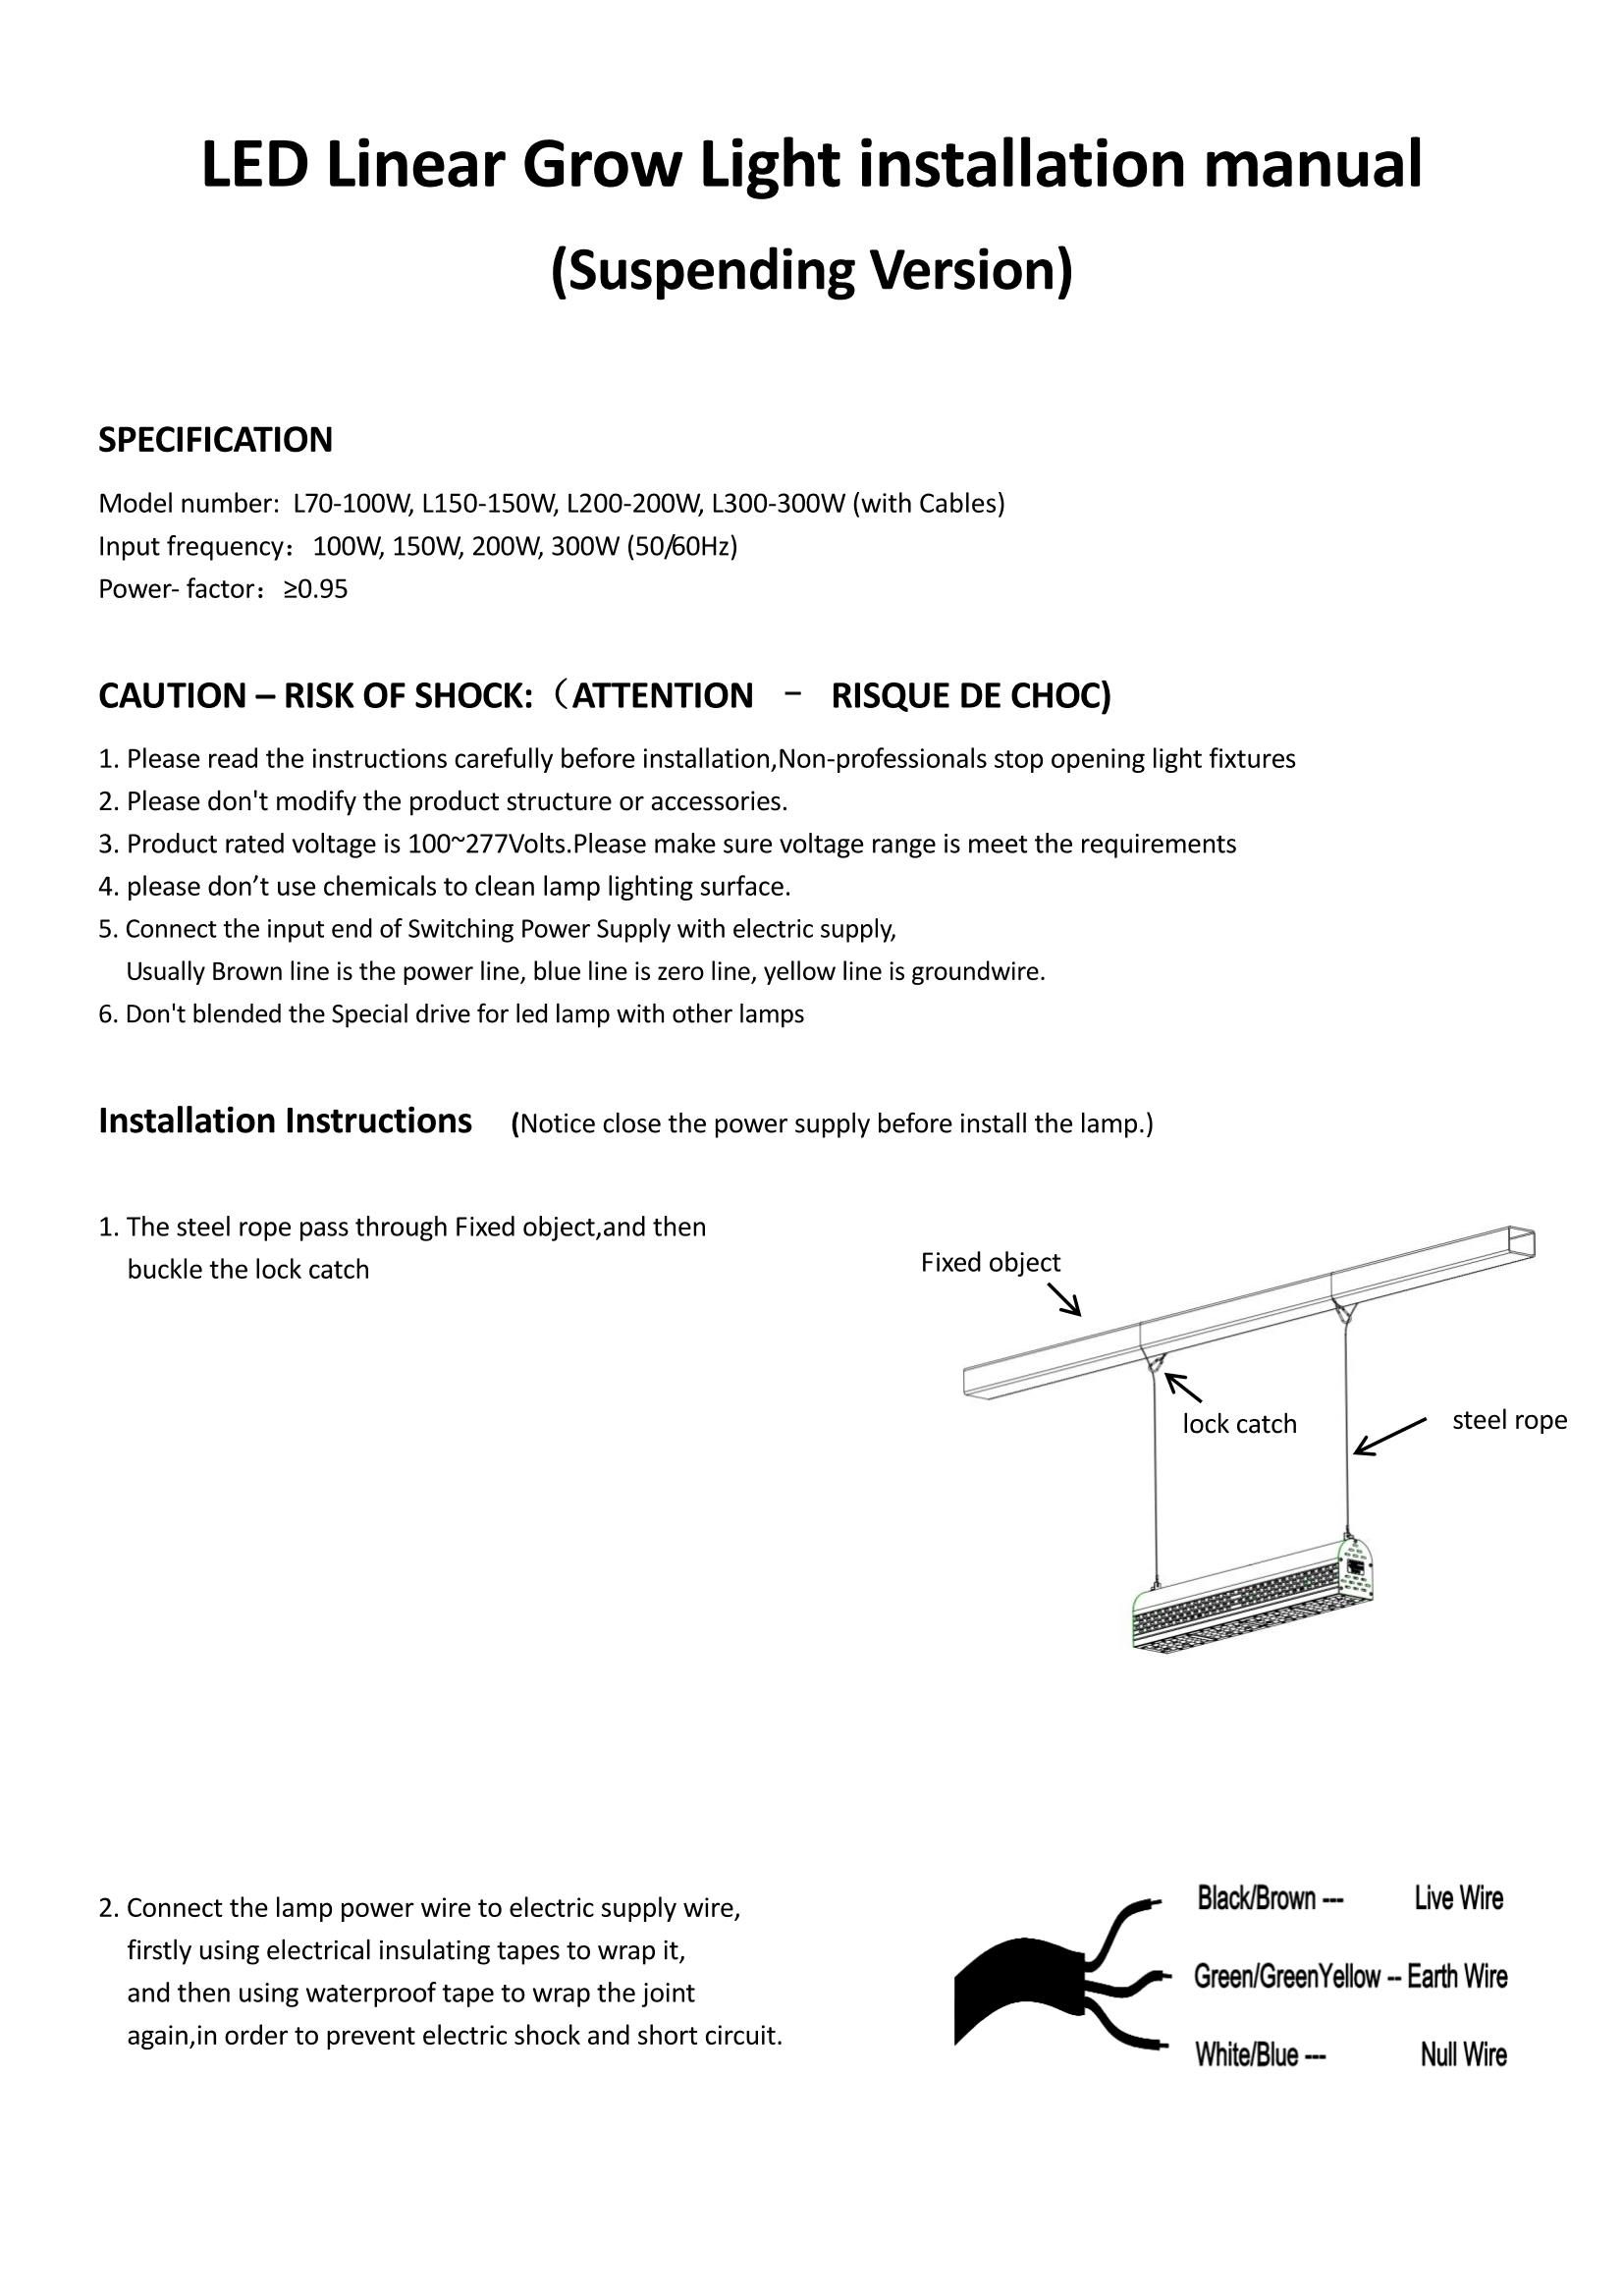 installation-instruction-for-led-linear-grow-light-suspending-version-page-1.jpeg